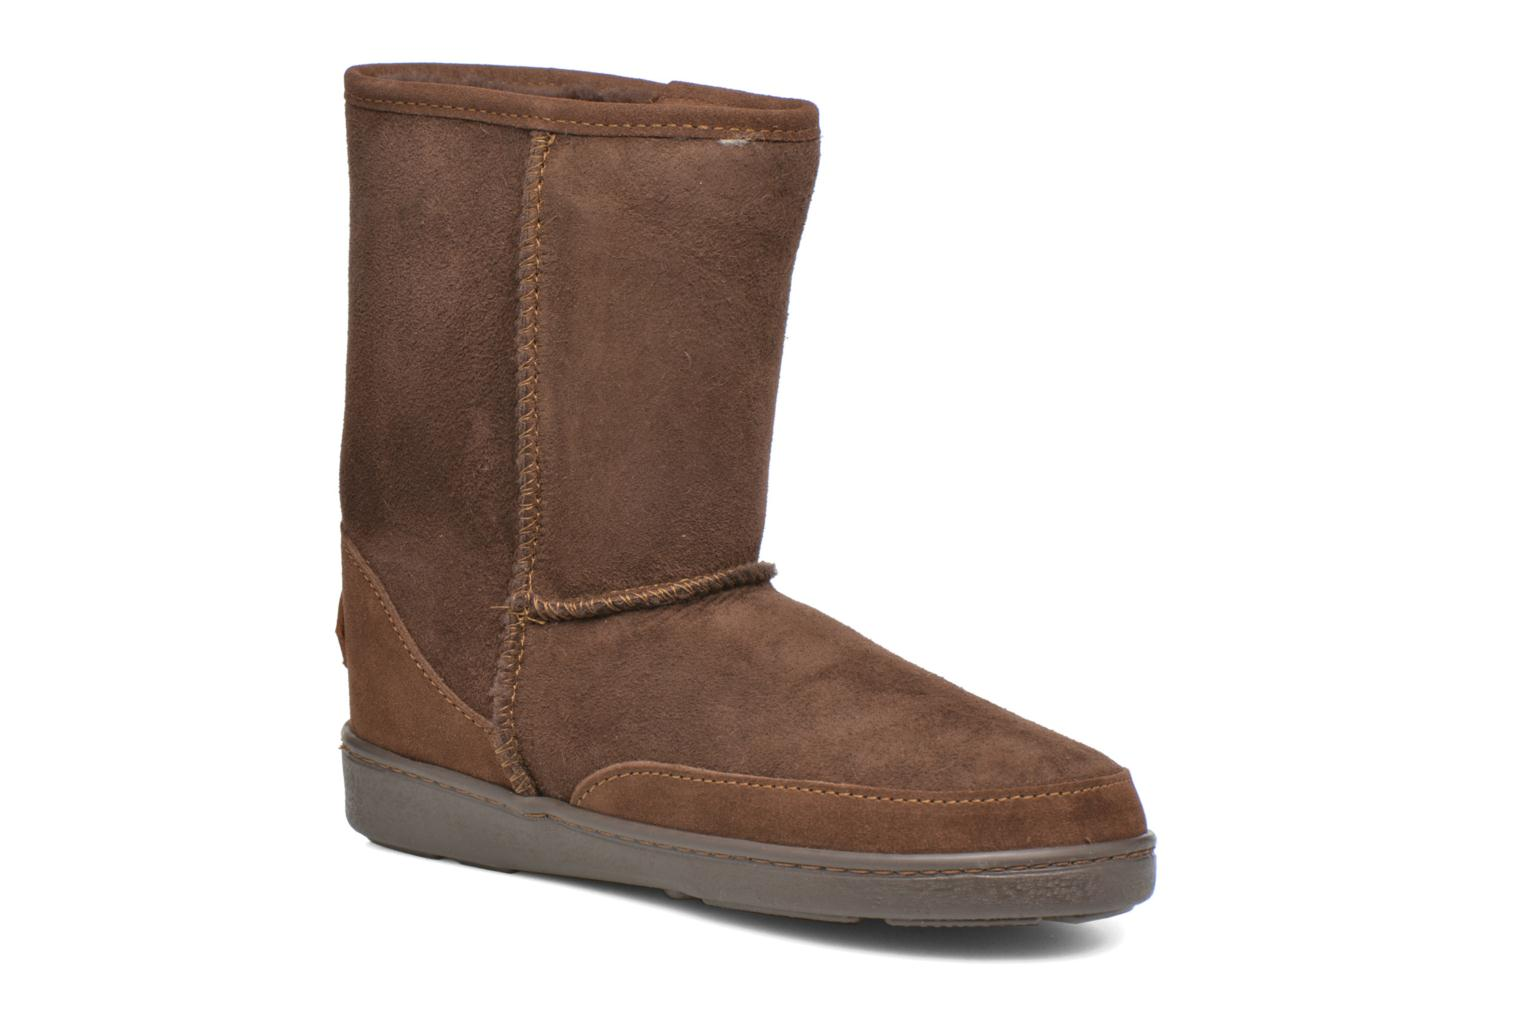 Bottines et boots Minnetonka Short Sheepskin Pug Boot W Marron vue détail/paire